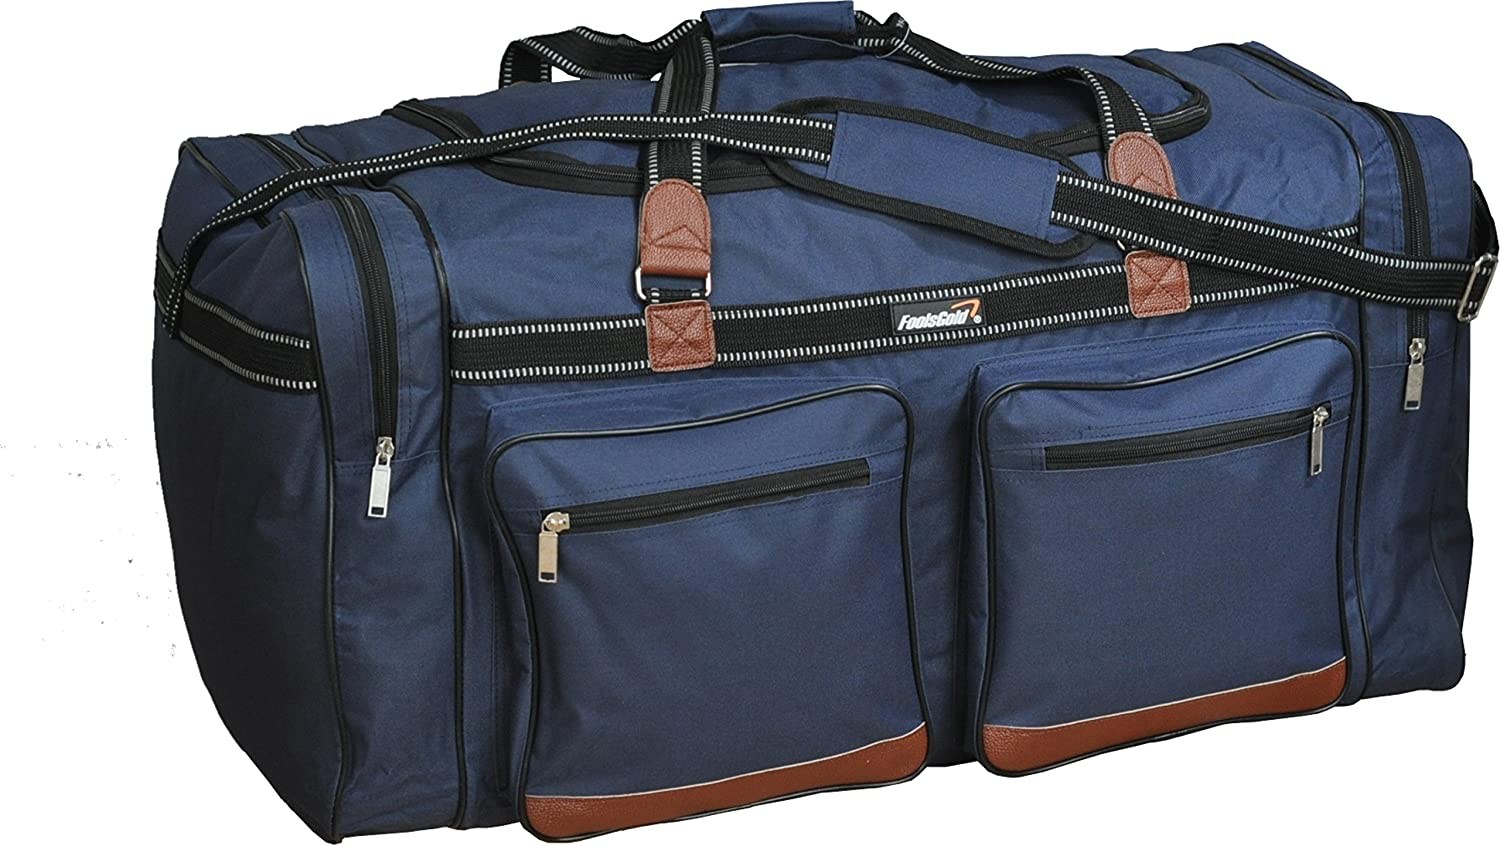 foolsGold Extra Large 120L Holdall Travel Duffle Bag in Black